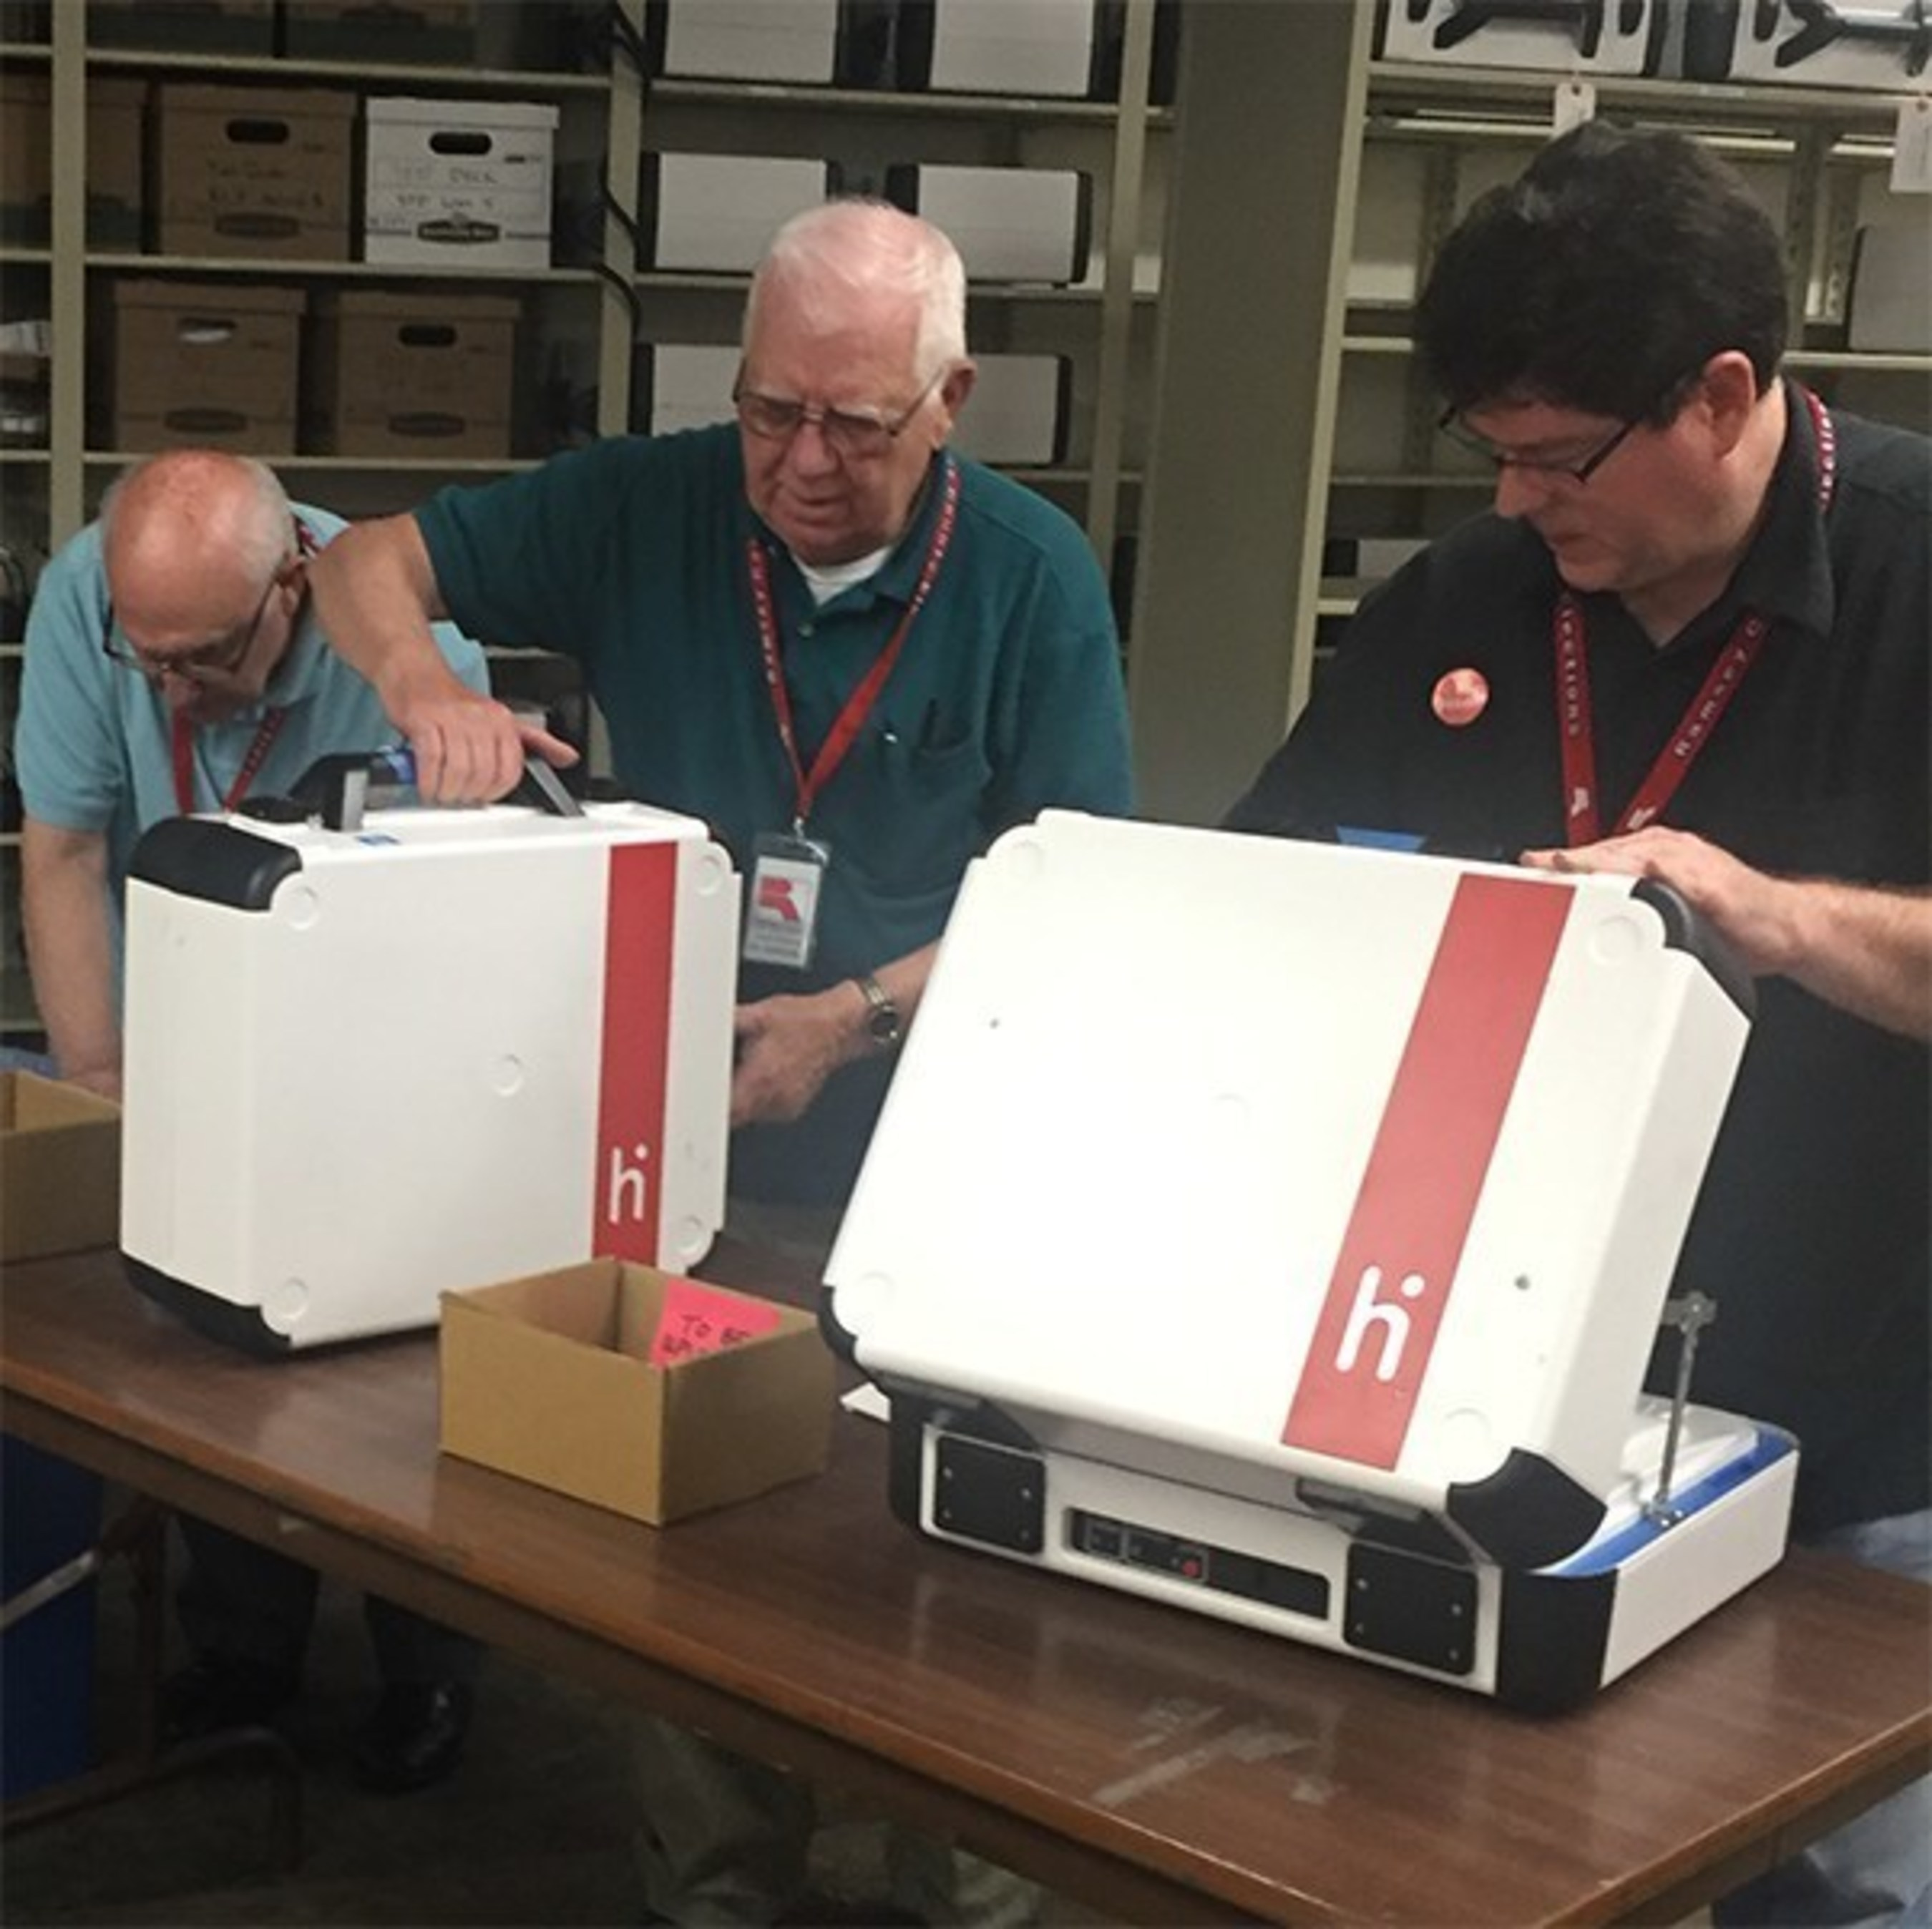 At the end of Election Day, locked and sealed Verity ballot counters are returned to Ramsey County headquarters to be opened by supervised elections staff.